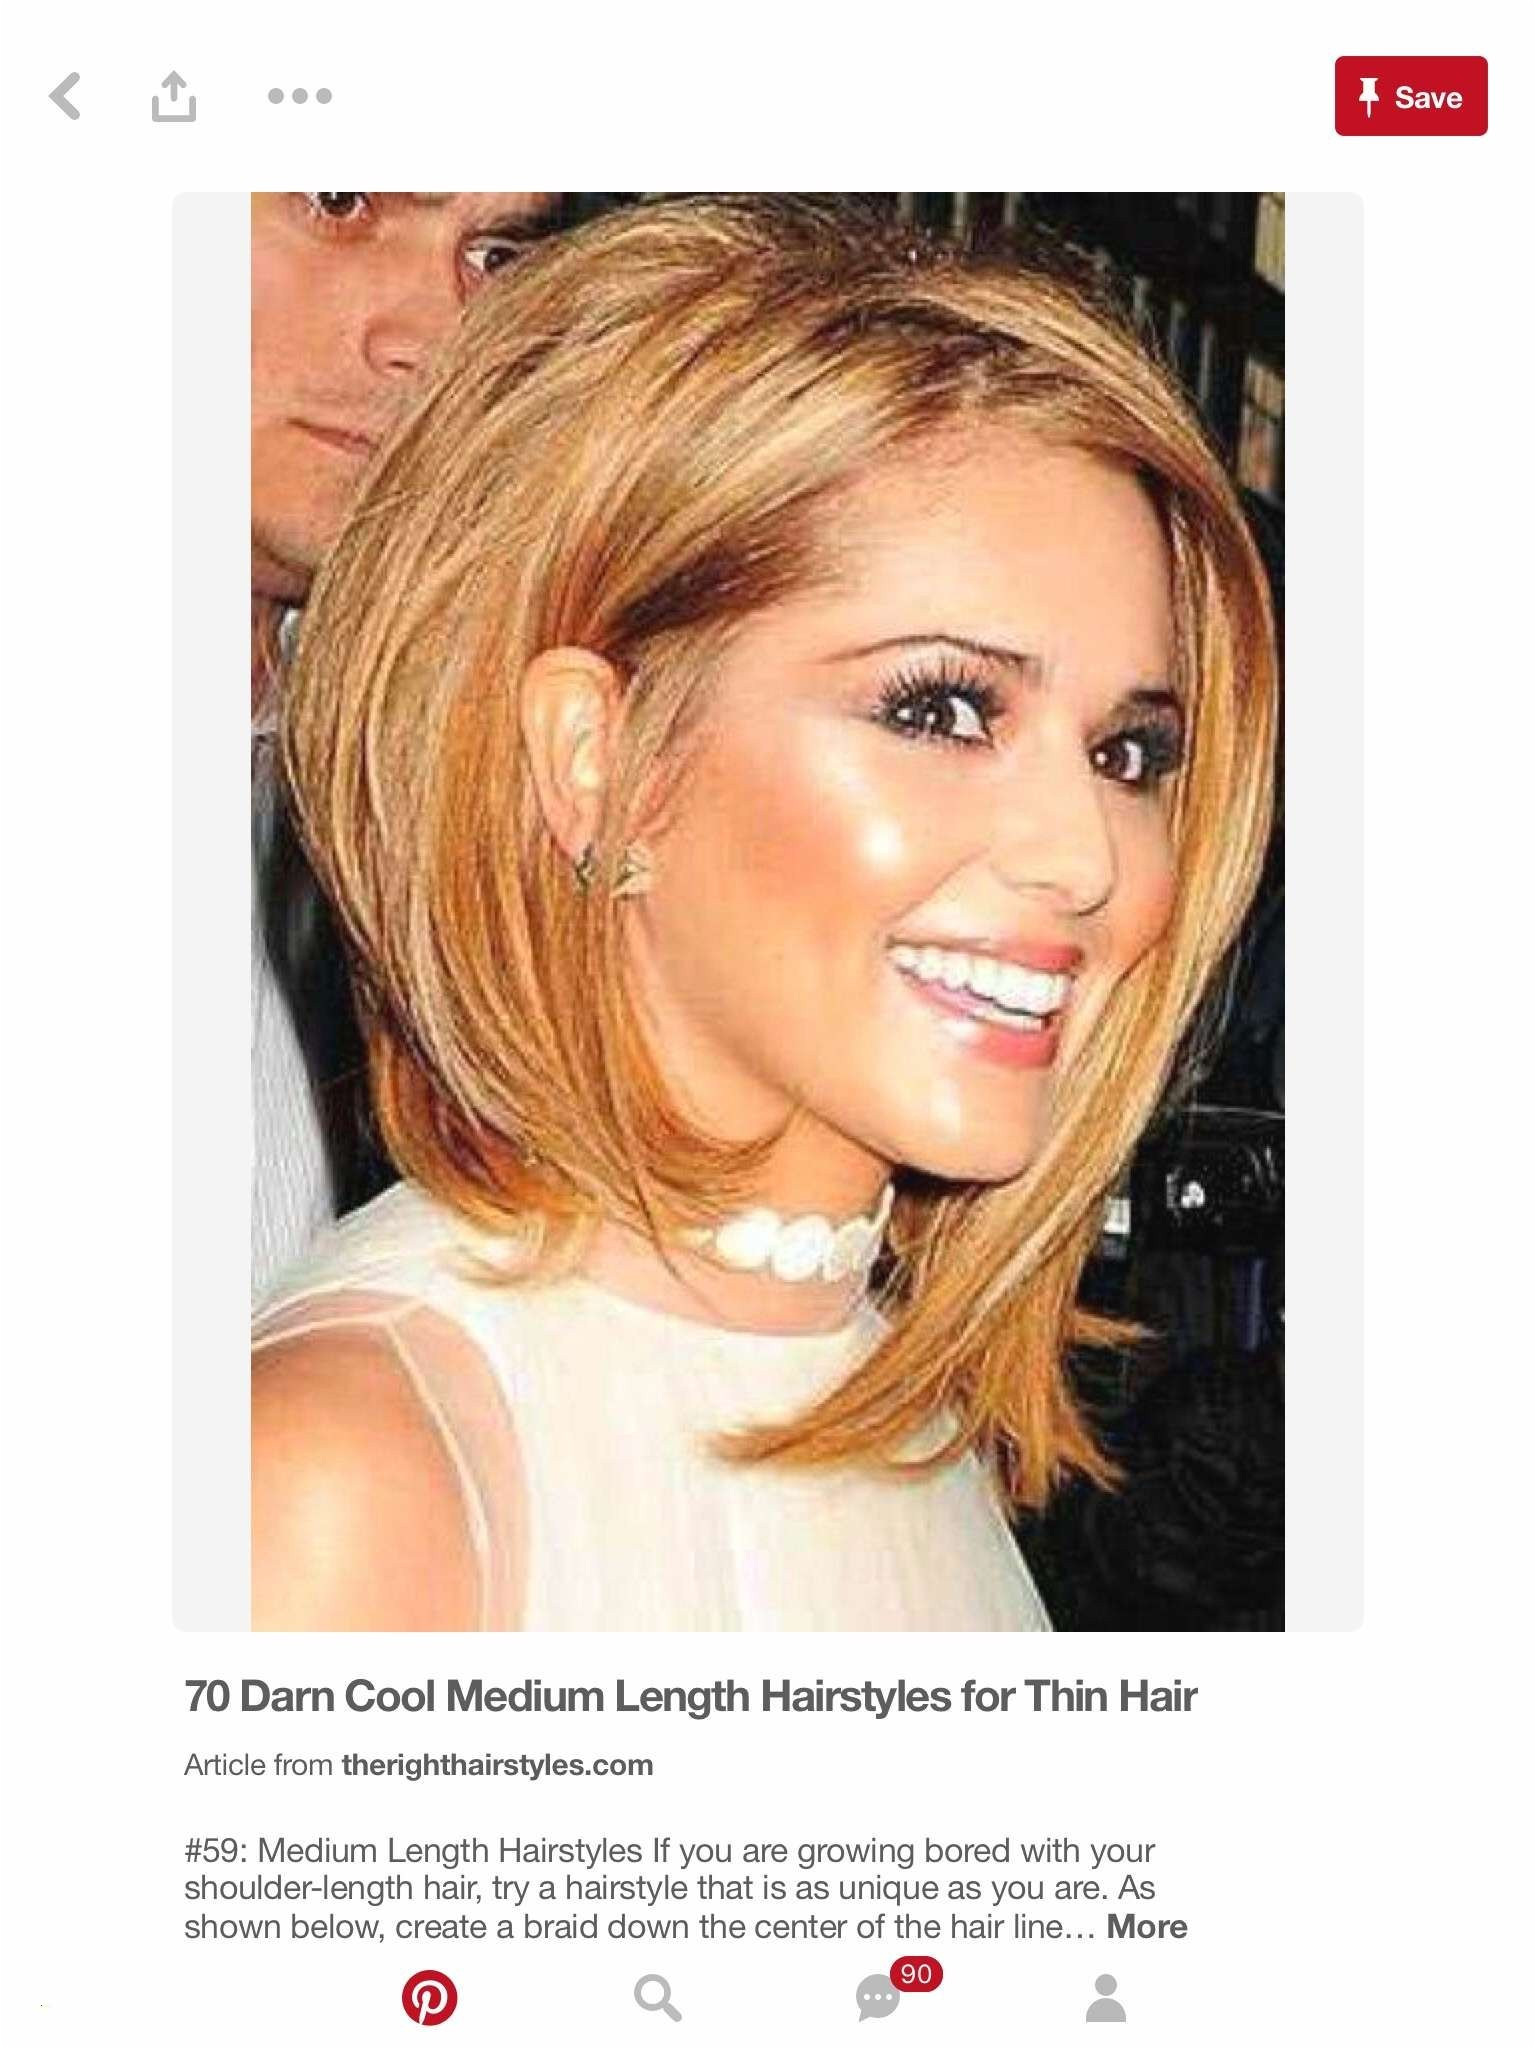 Hairstyles For Girls With Wavy Hair Inspirational Wavy Hair Mens Styles Haircut For Girls Girl Getting